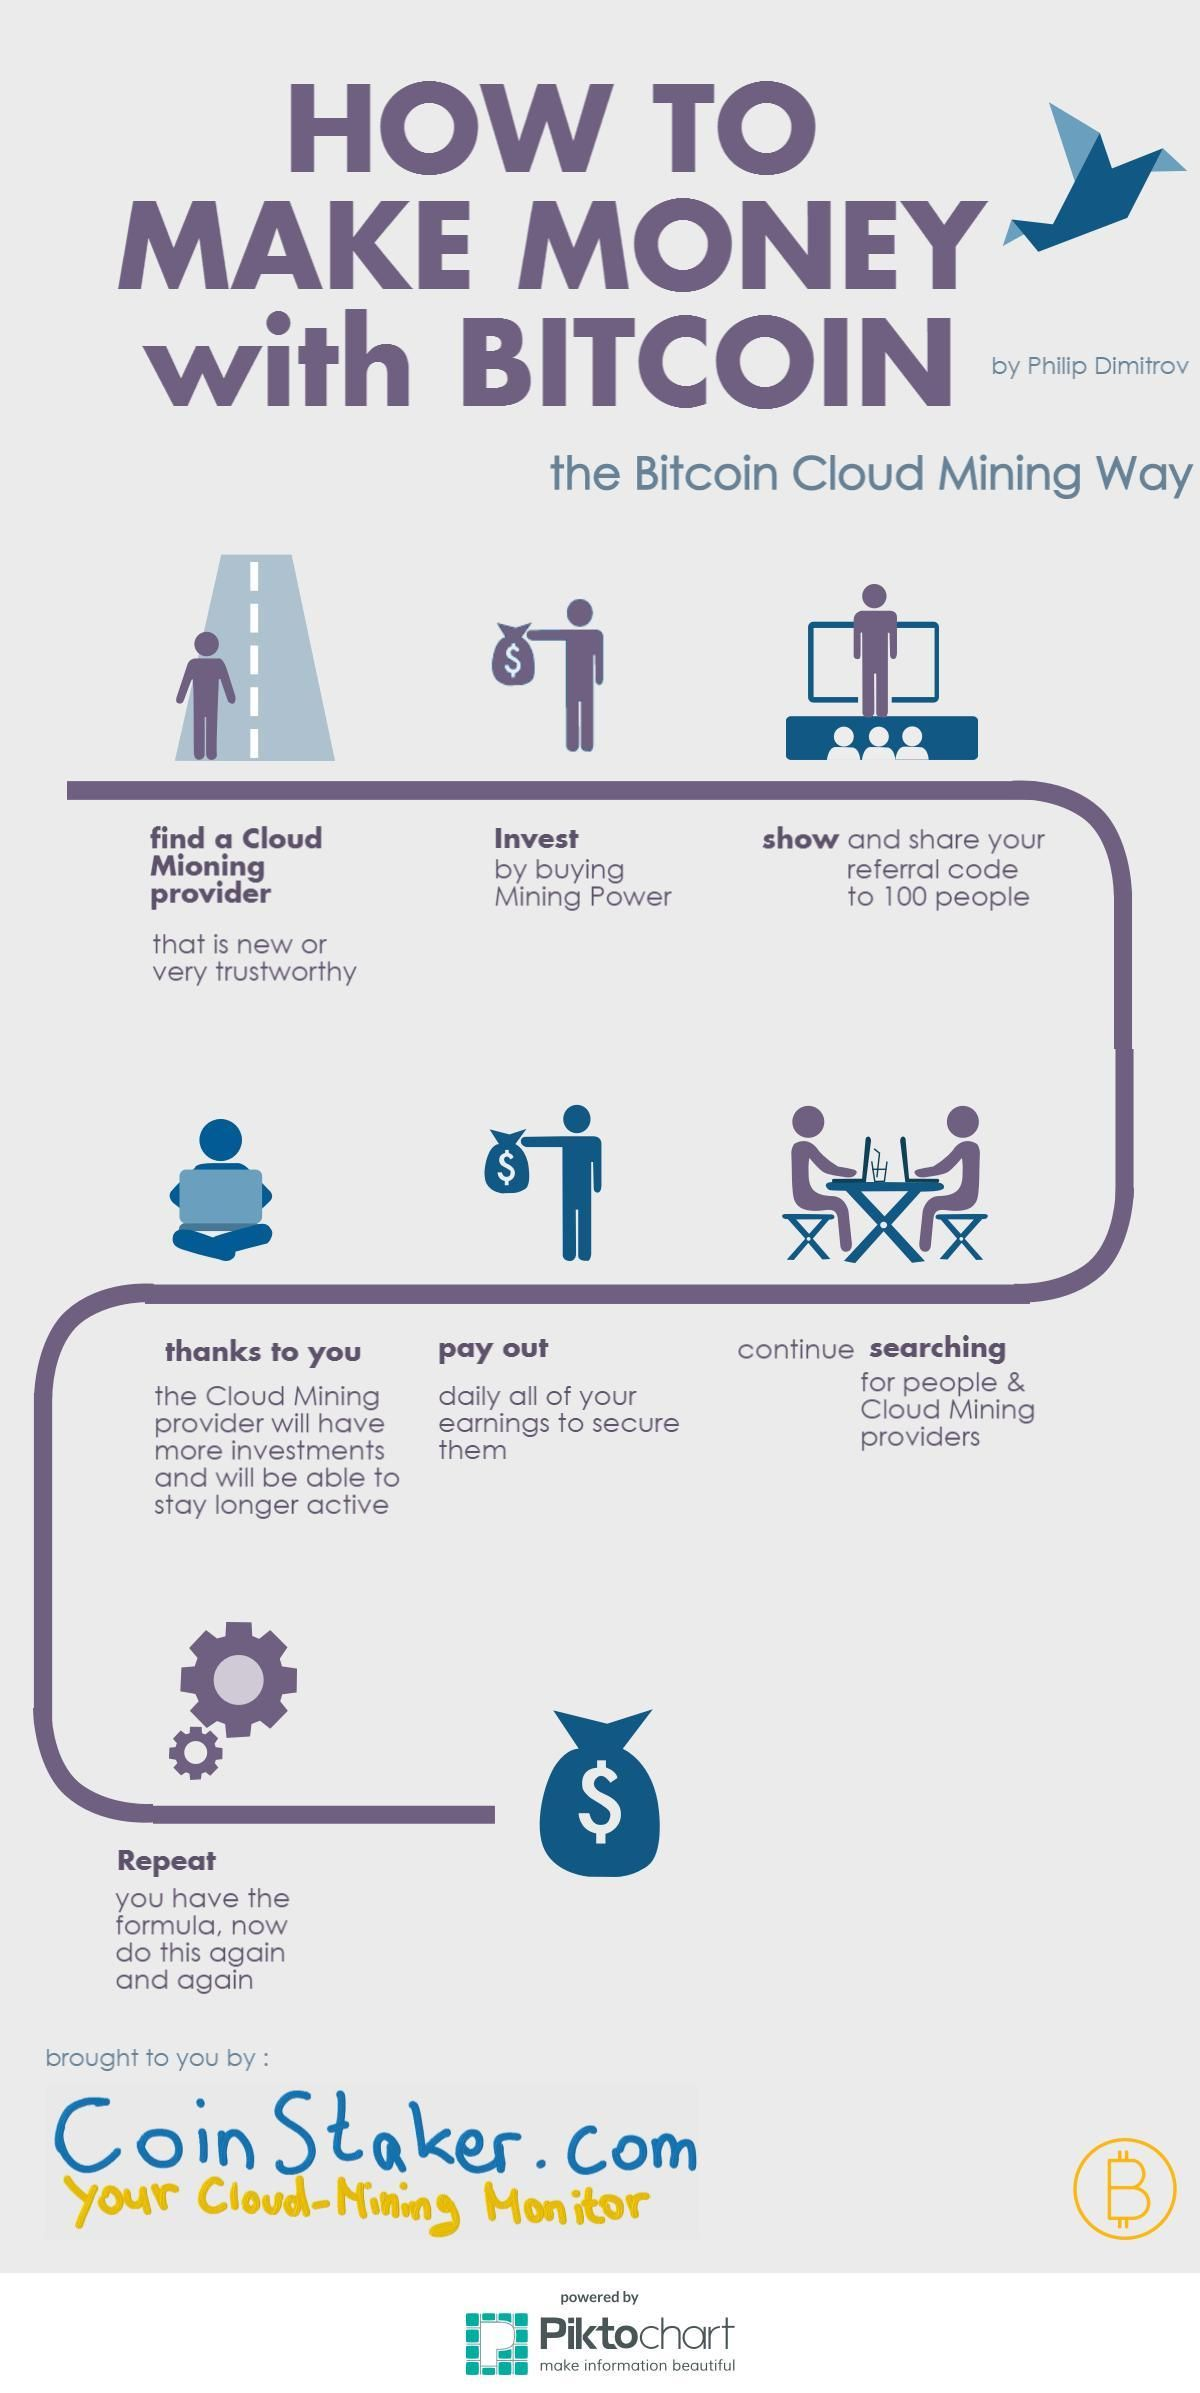 There are many ways to earn money with Bitcoin. In this Infographic you can learn how to do so with cloud mining. Cloud Mining is a way to produce (mine) Bitcoins without the need of any special hardware. Learn more in the following infographic.